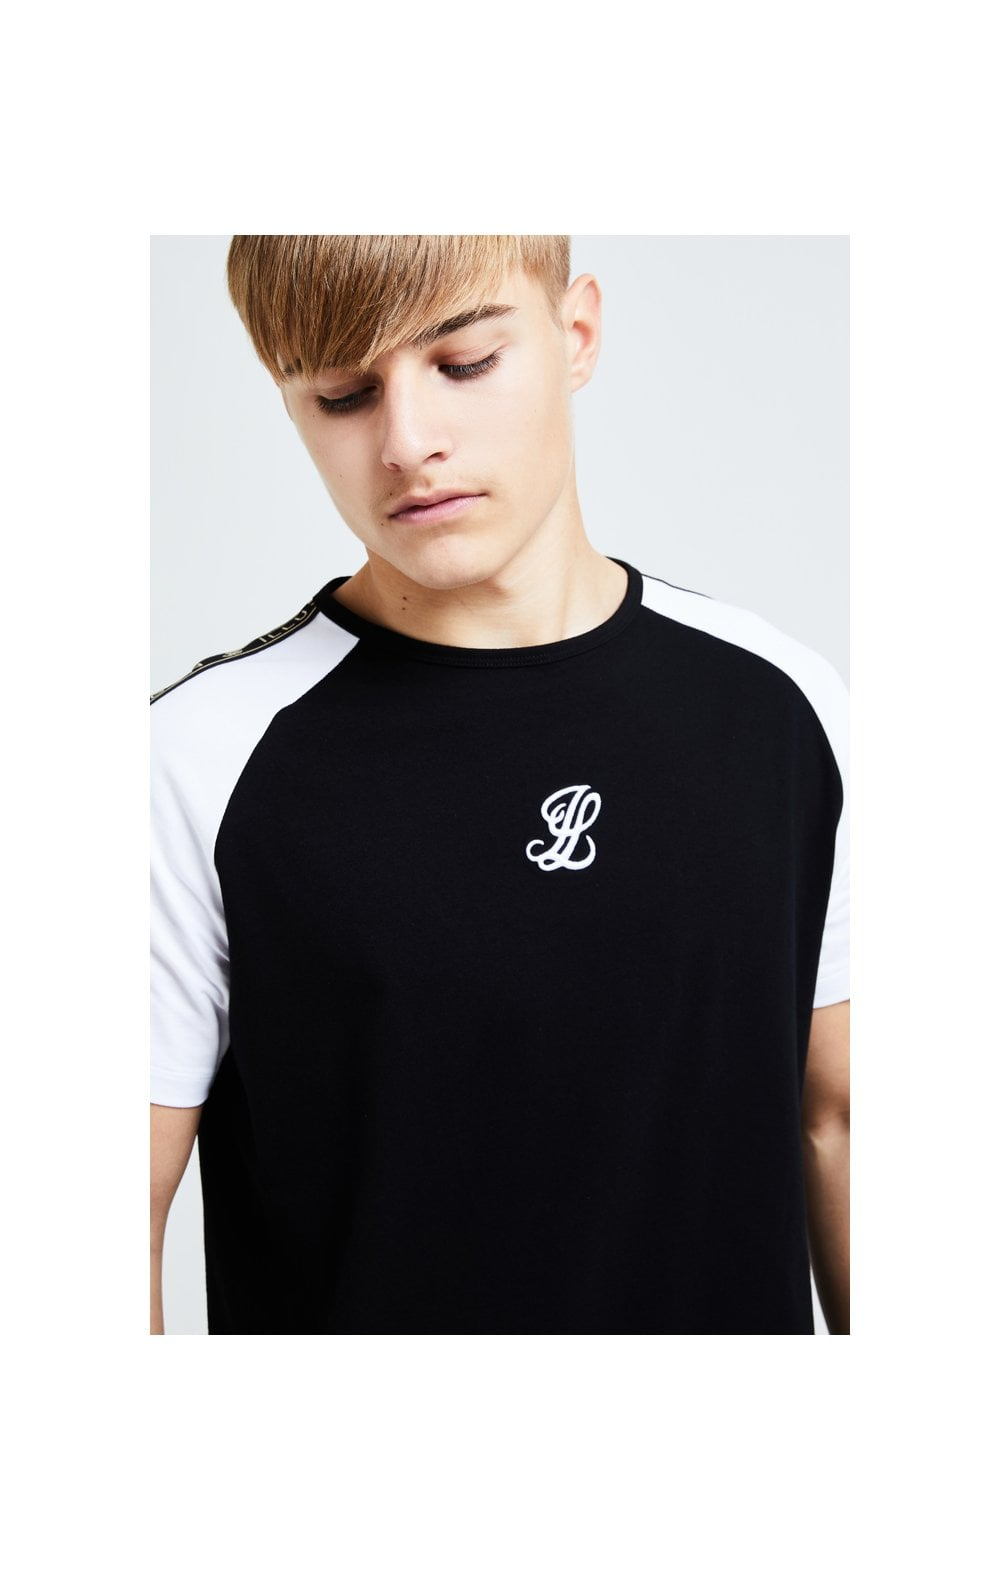 Load image into Gallery viewer, Illusive London Diverge Raglan Tee - Black Gold & White (3)